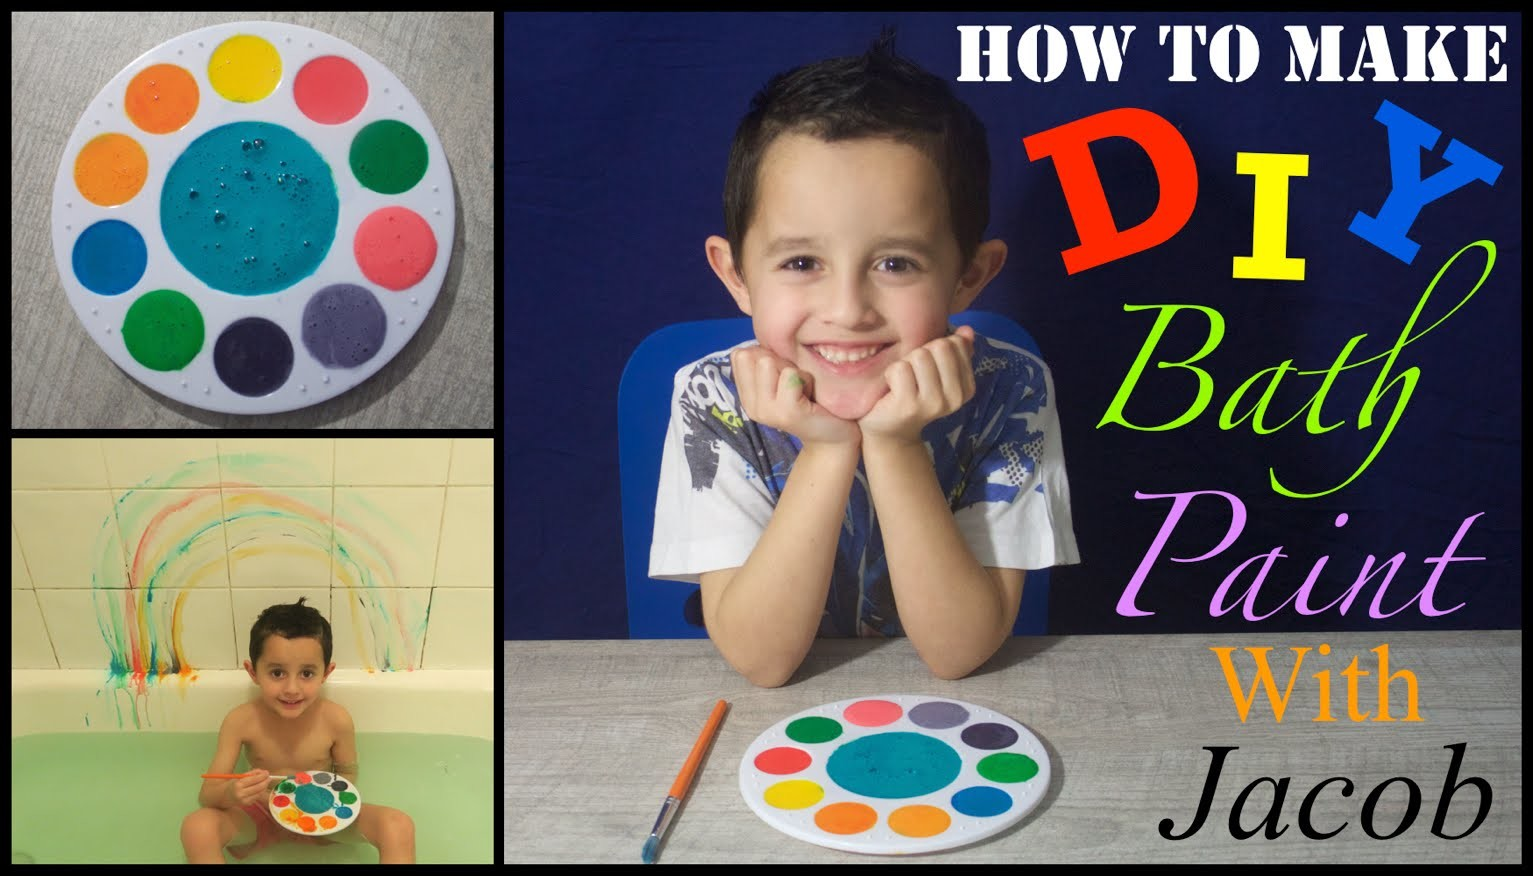 DIY BATH PAINT FOR TODDLERS & KIDS | EASY & SIMPLE | RINSES AWAY INSTANTLY!